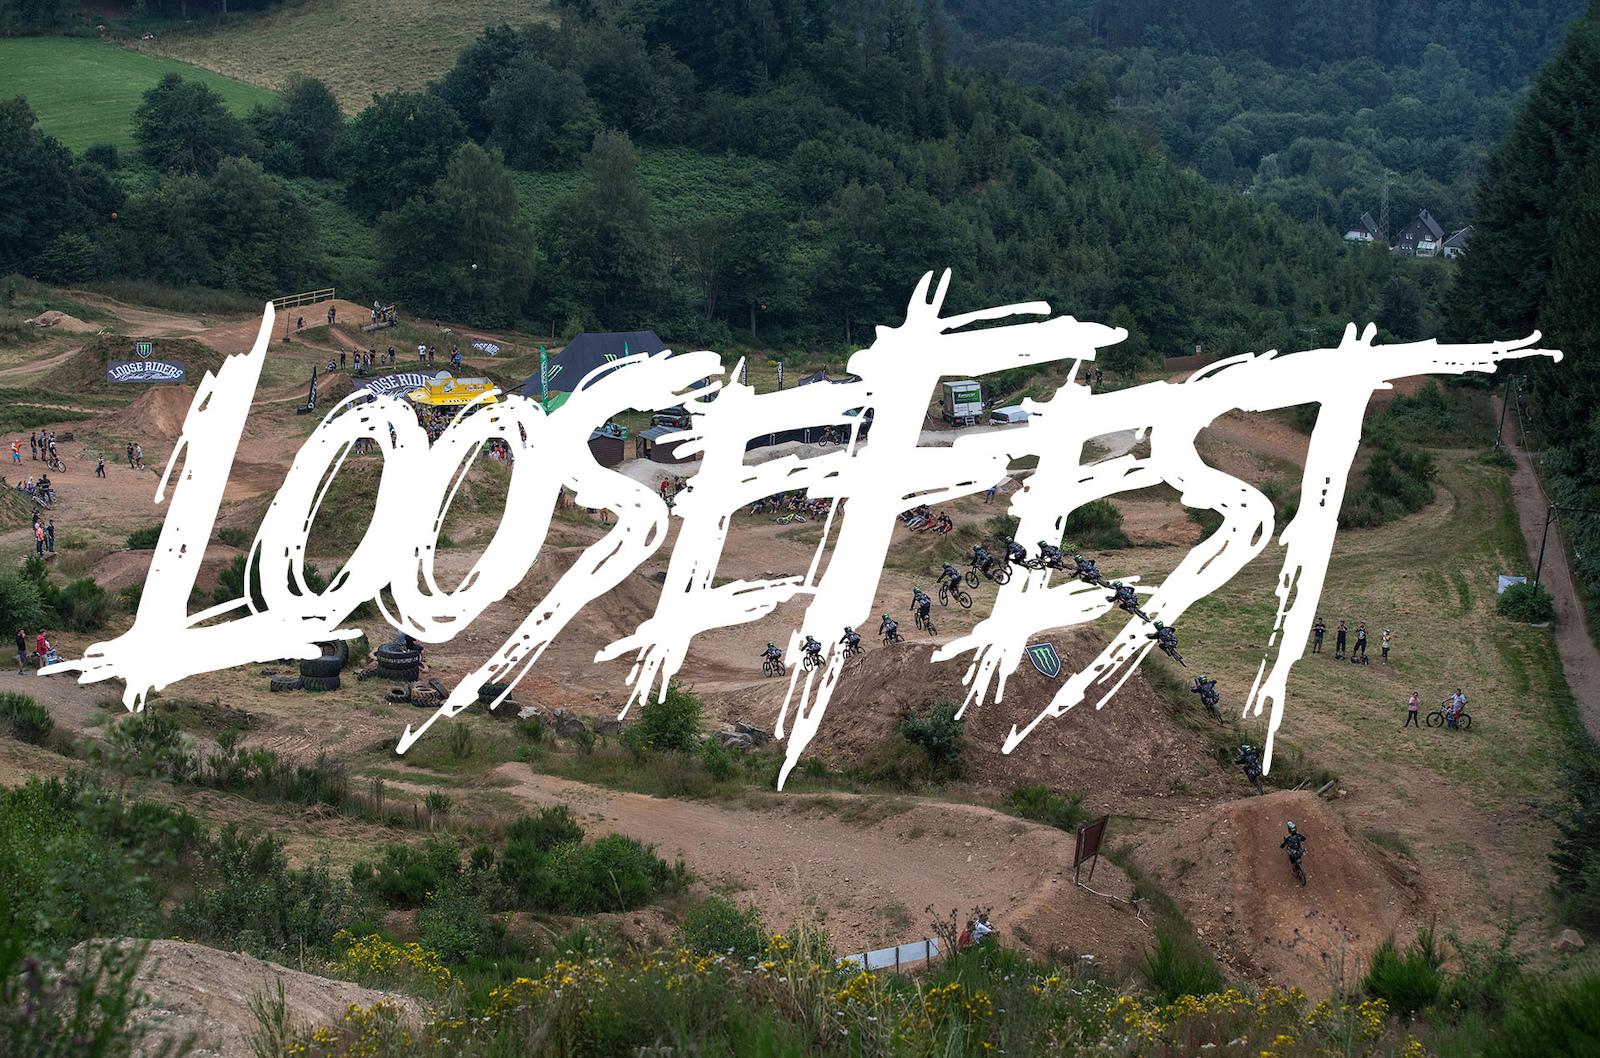 LooseFEST 2016 in Sequence